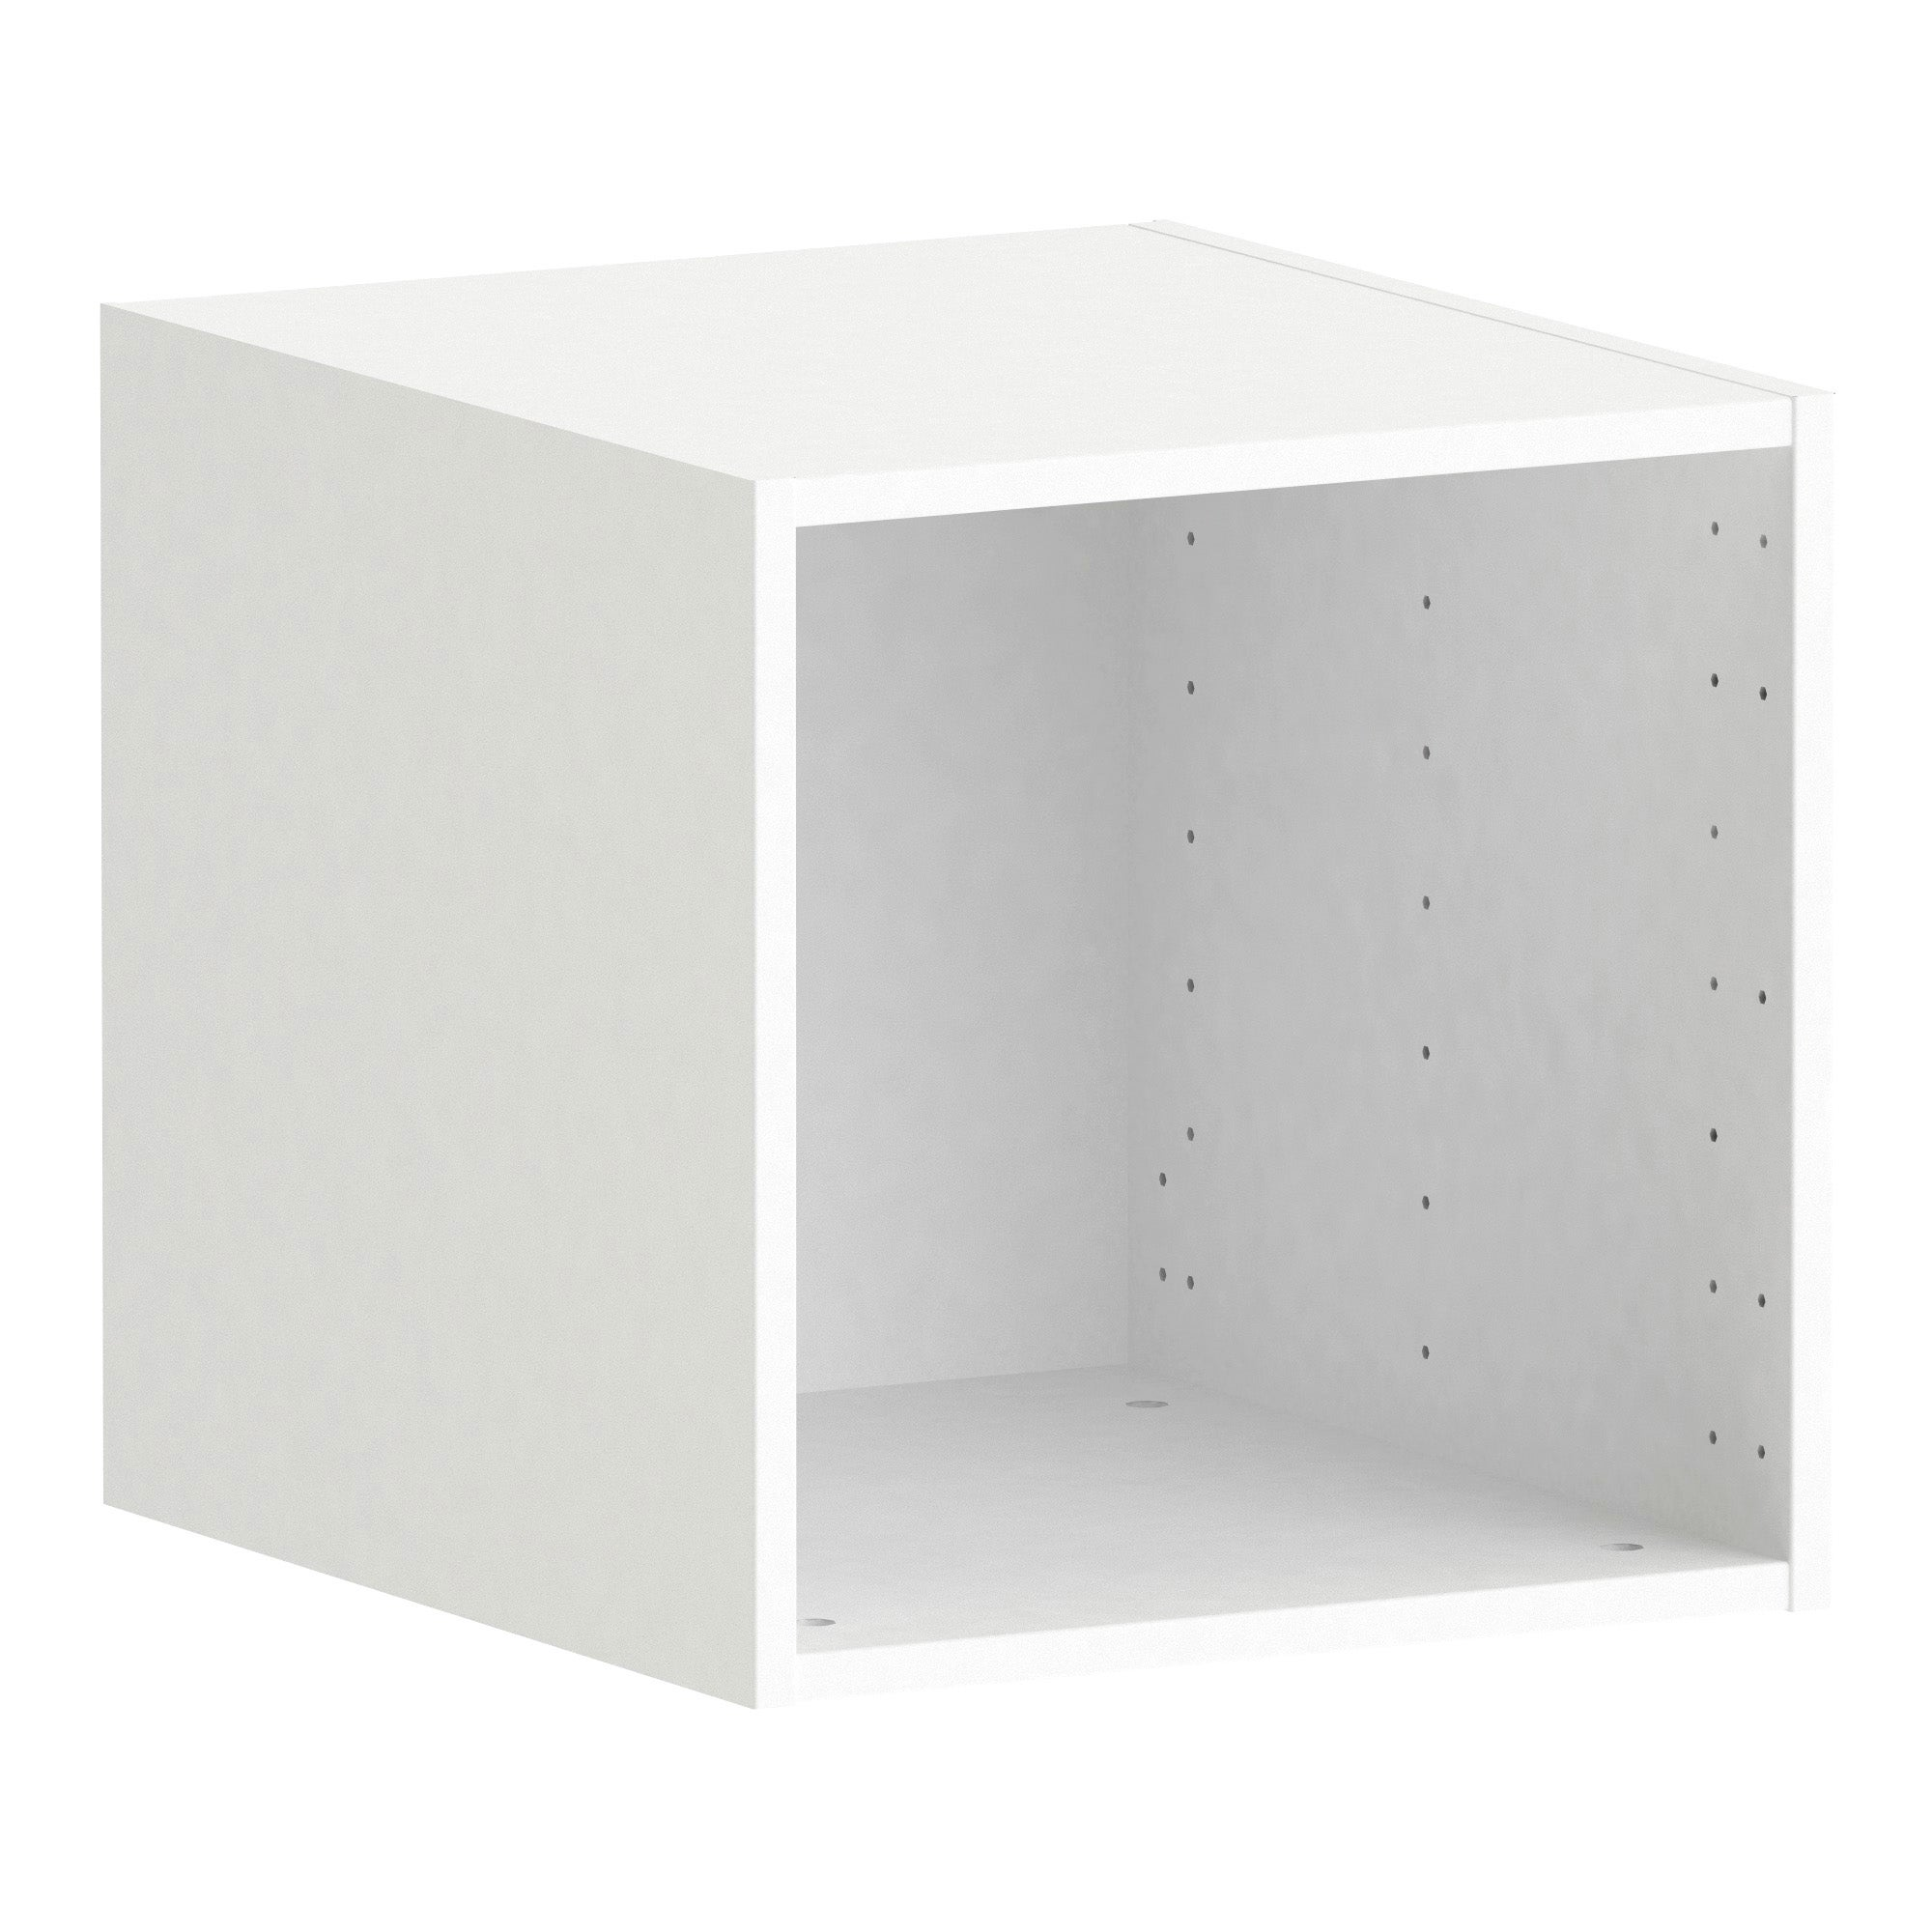 Caisson Spaceo Home Blanc H 40 X L 40 X P 45 Cm Leroy Merlin